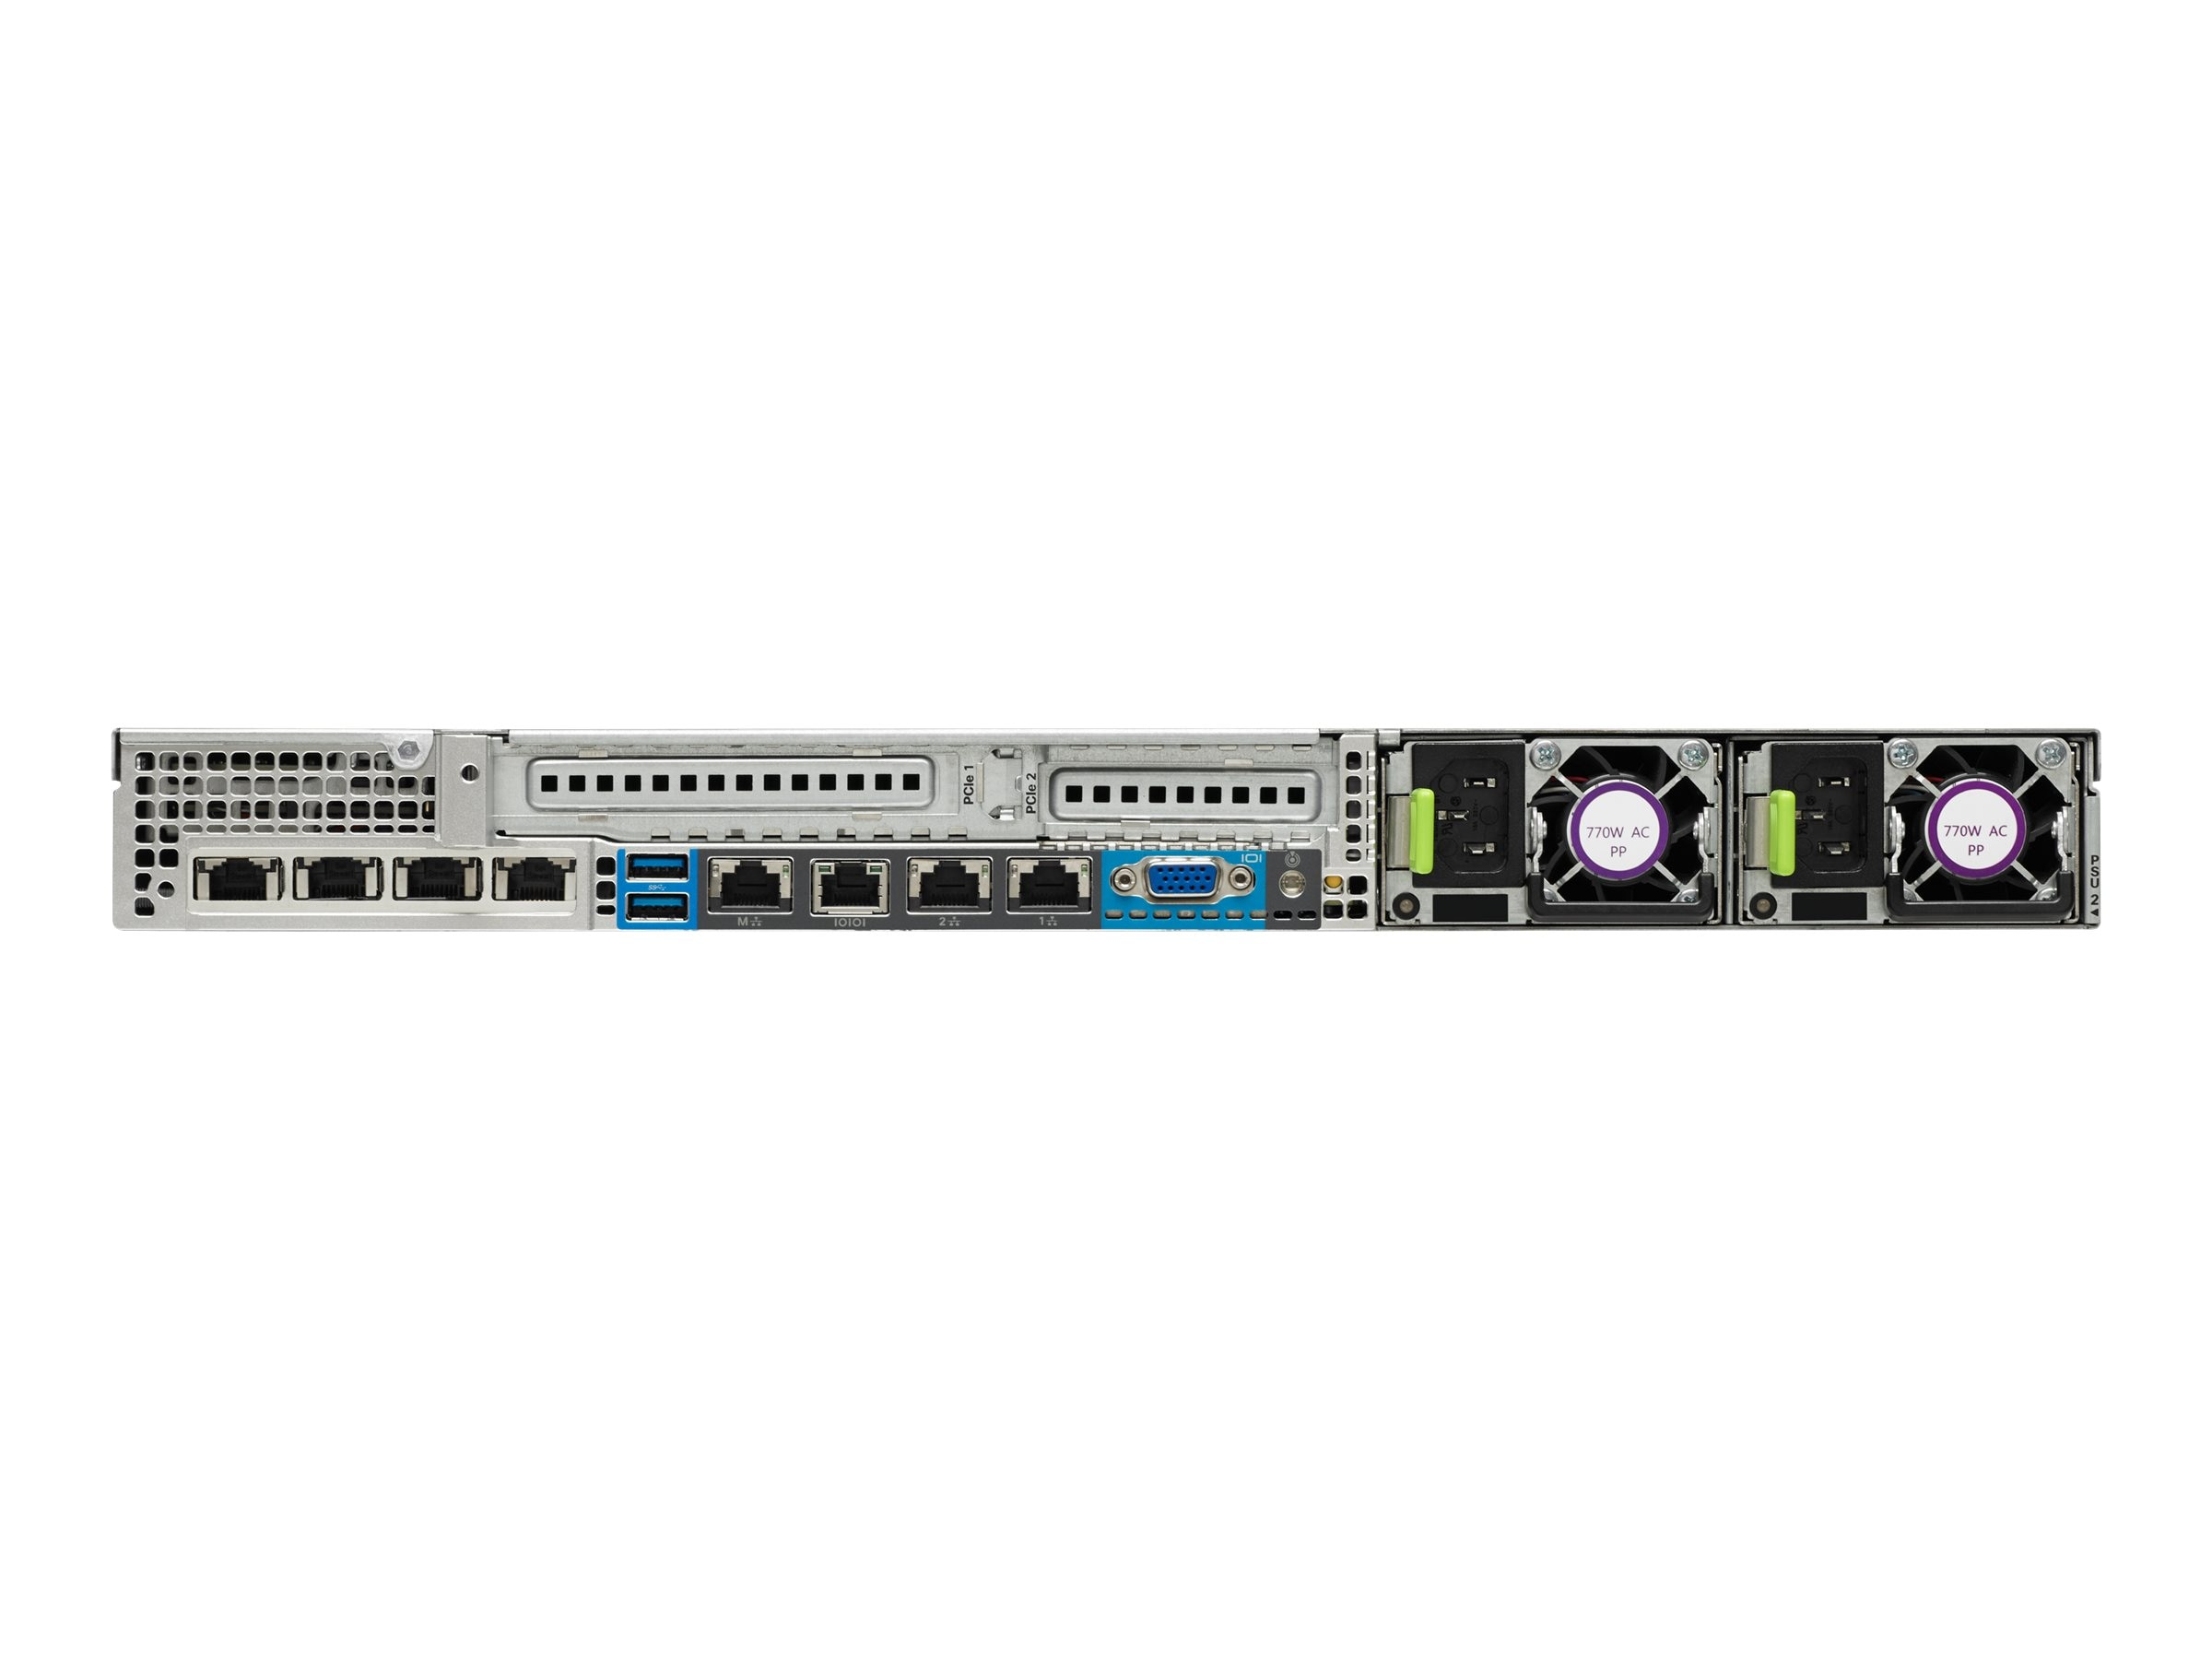 Cisco UCS-SP-C220M4-S2 Image 4